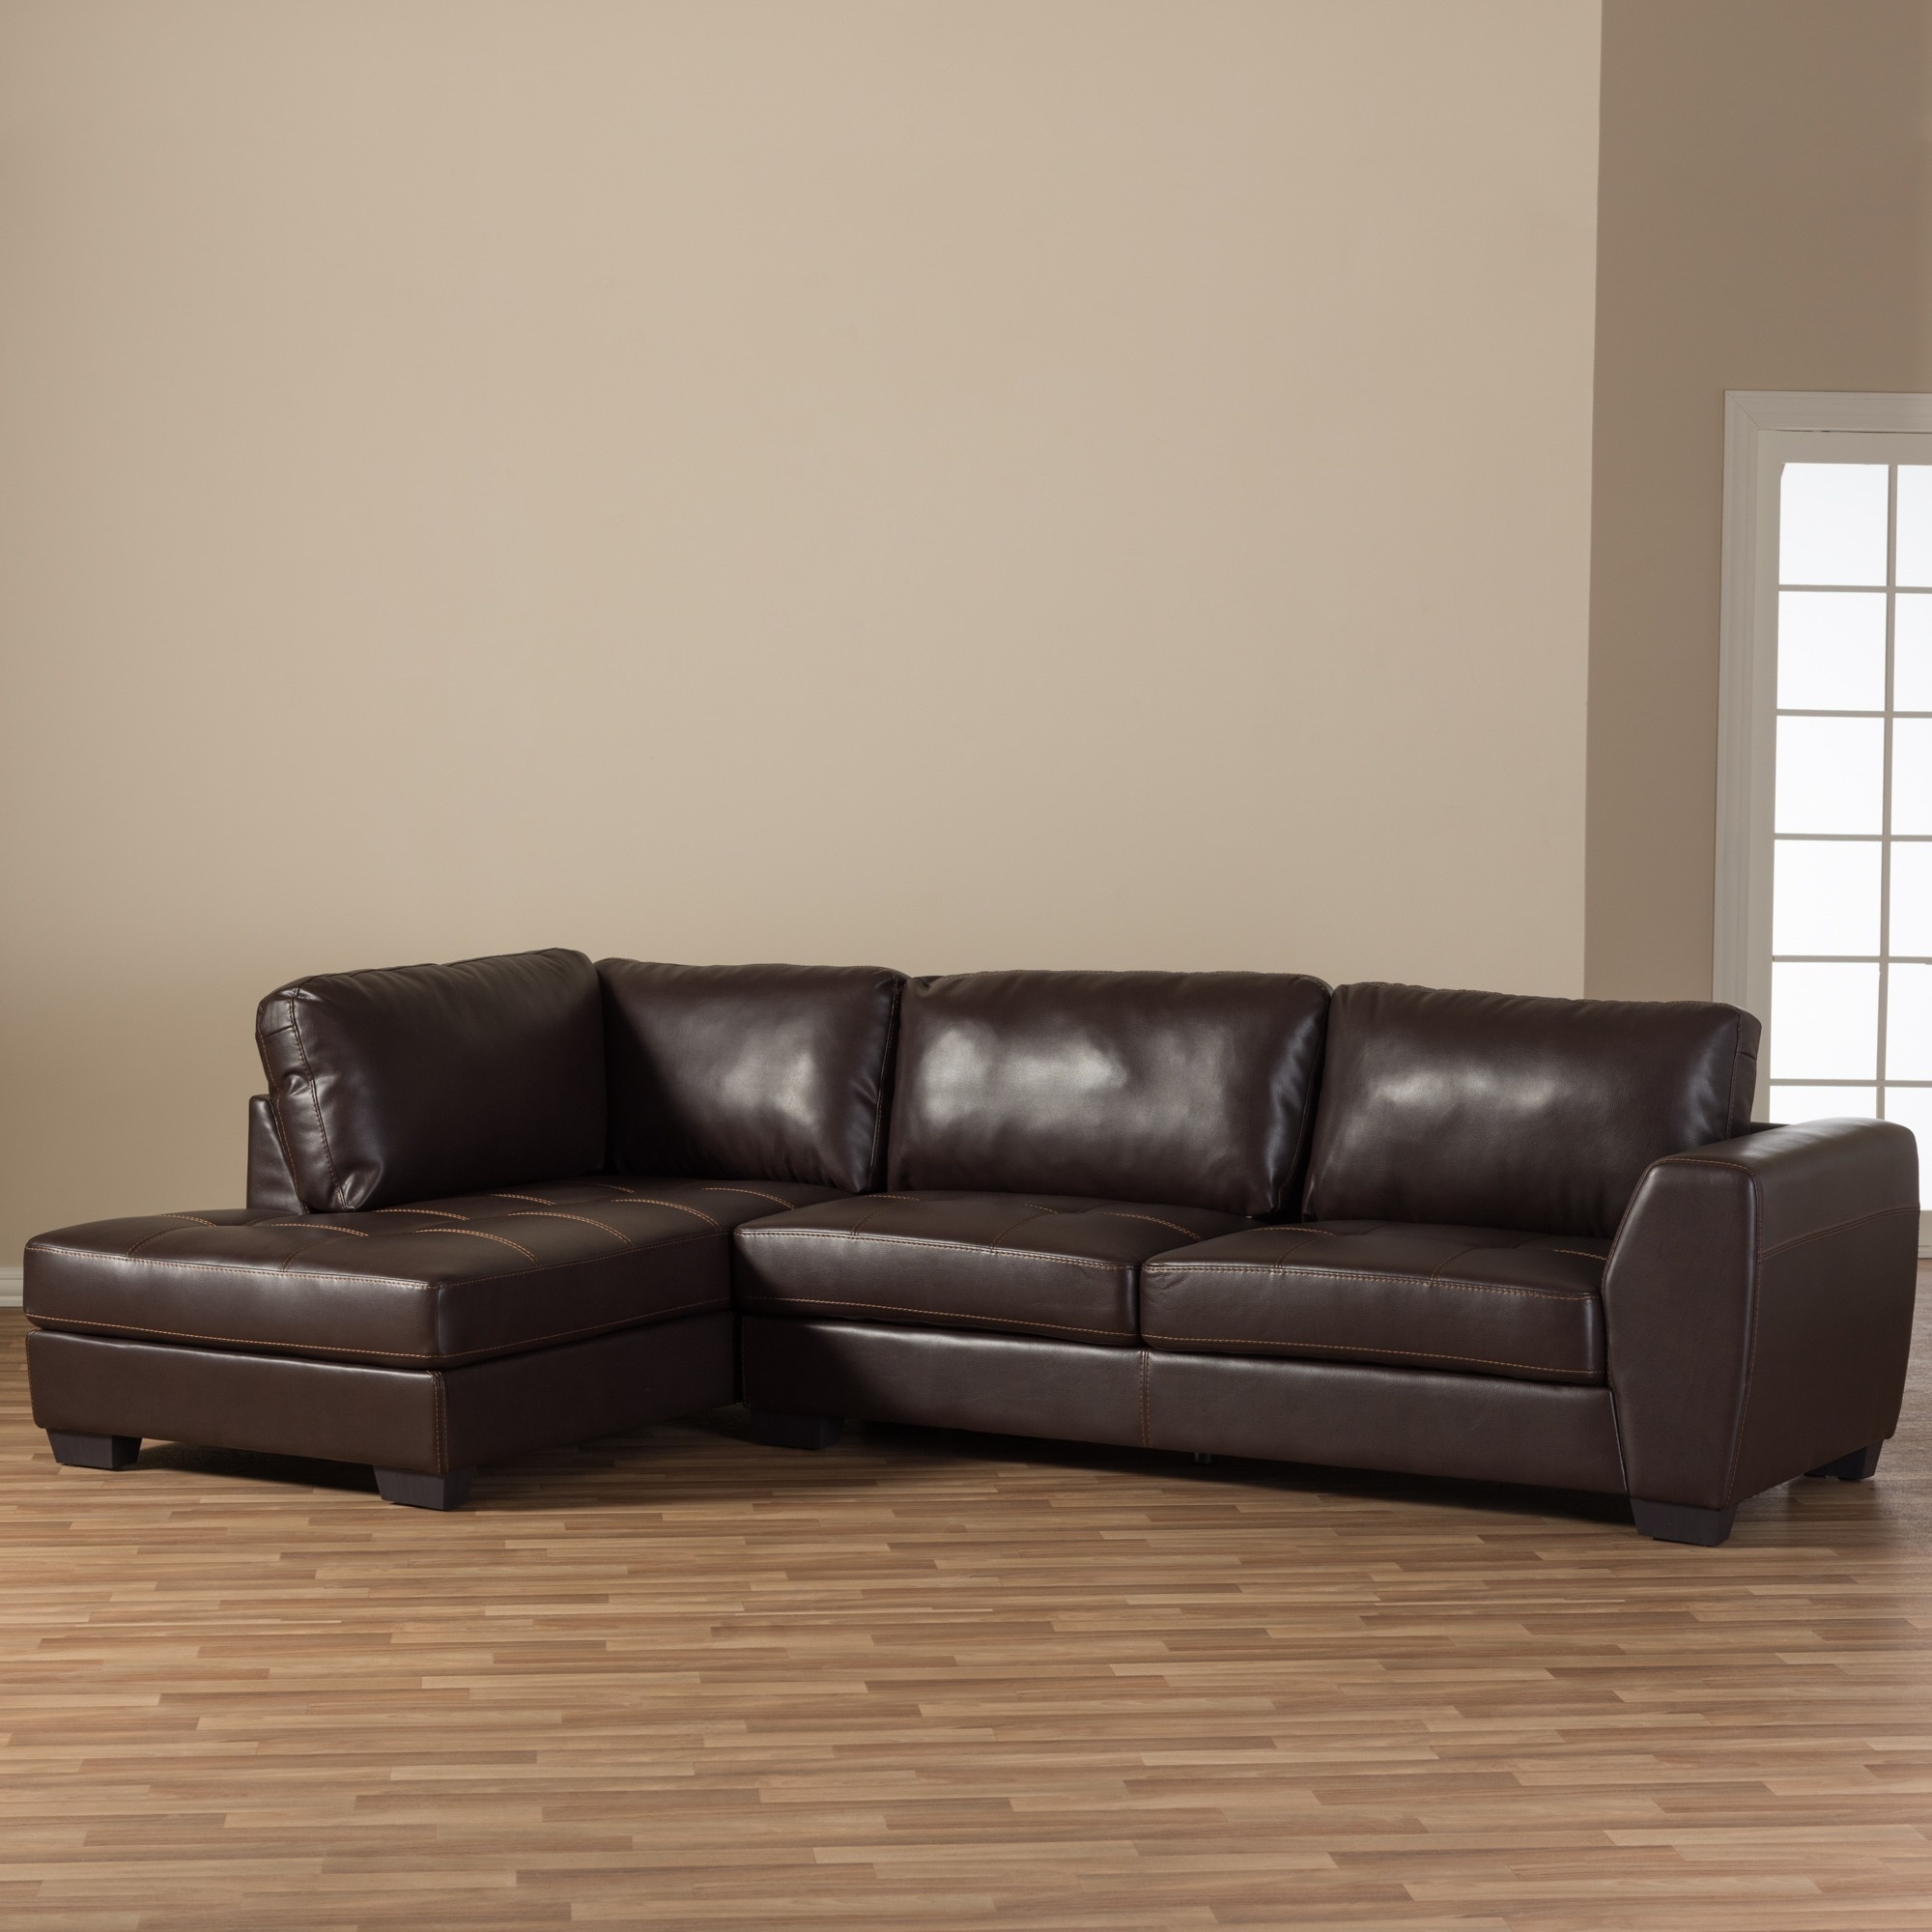 chaise fabric size furniture place sofa room sectional tan seating new piece sets sale cloth couch genuine on and cheap large recliners dinette best white l of corner recliner modular living brown sofas shaped leather with modern for chaises buy to lounge sectionals